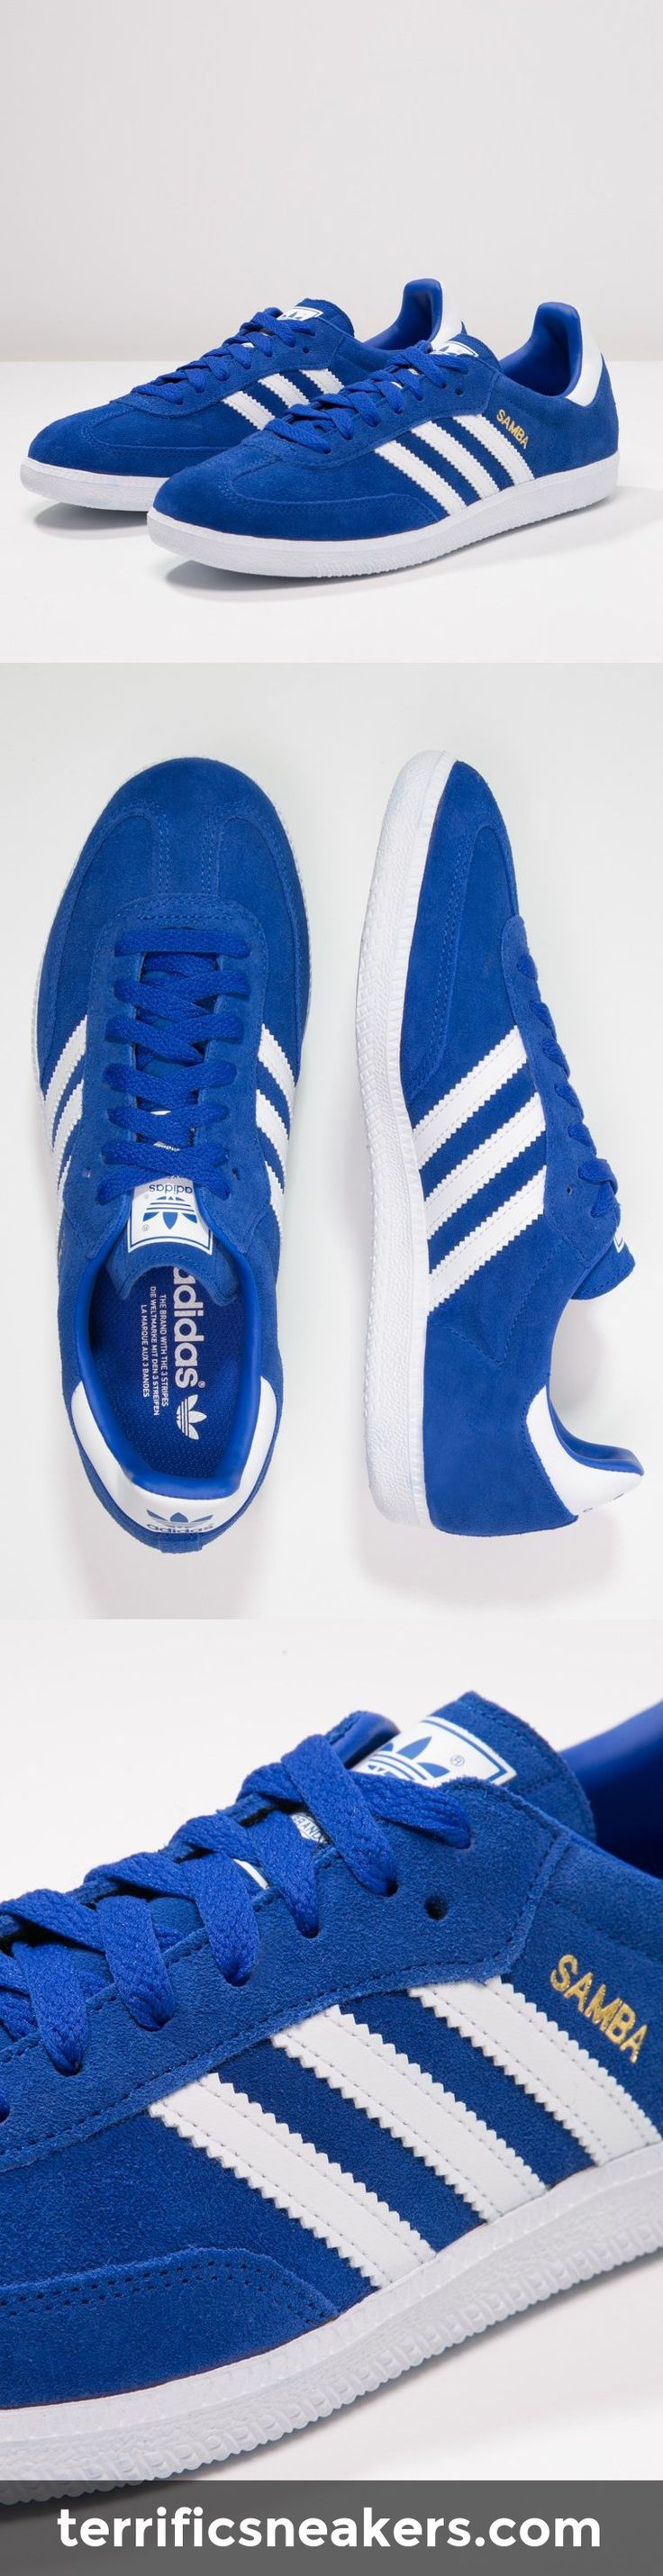 fucking awesome: adidas Originals SAMBA Sneaker bold blue/white/gold #Sneakers